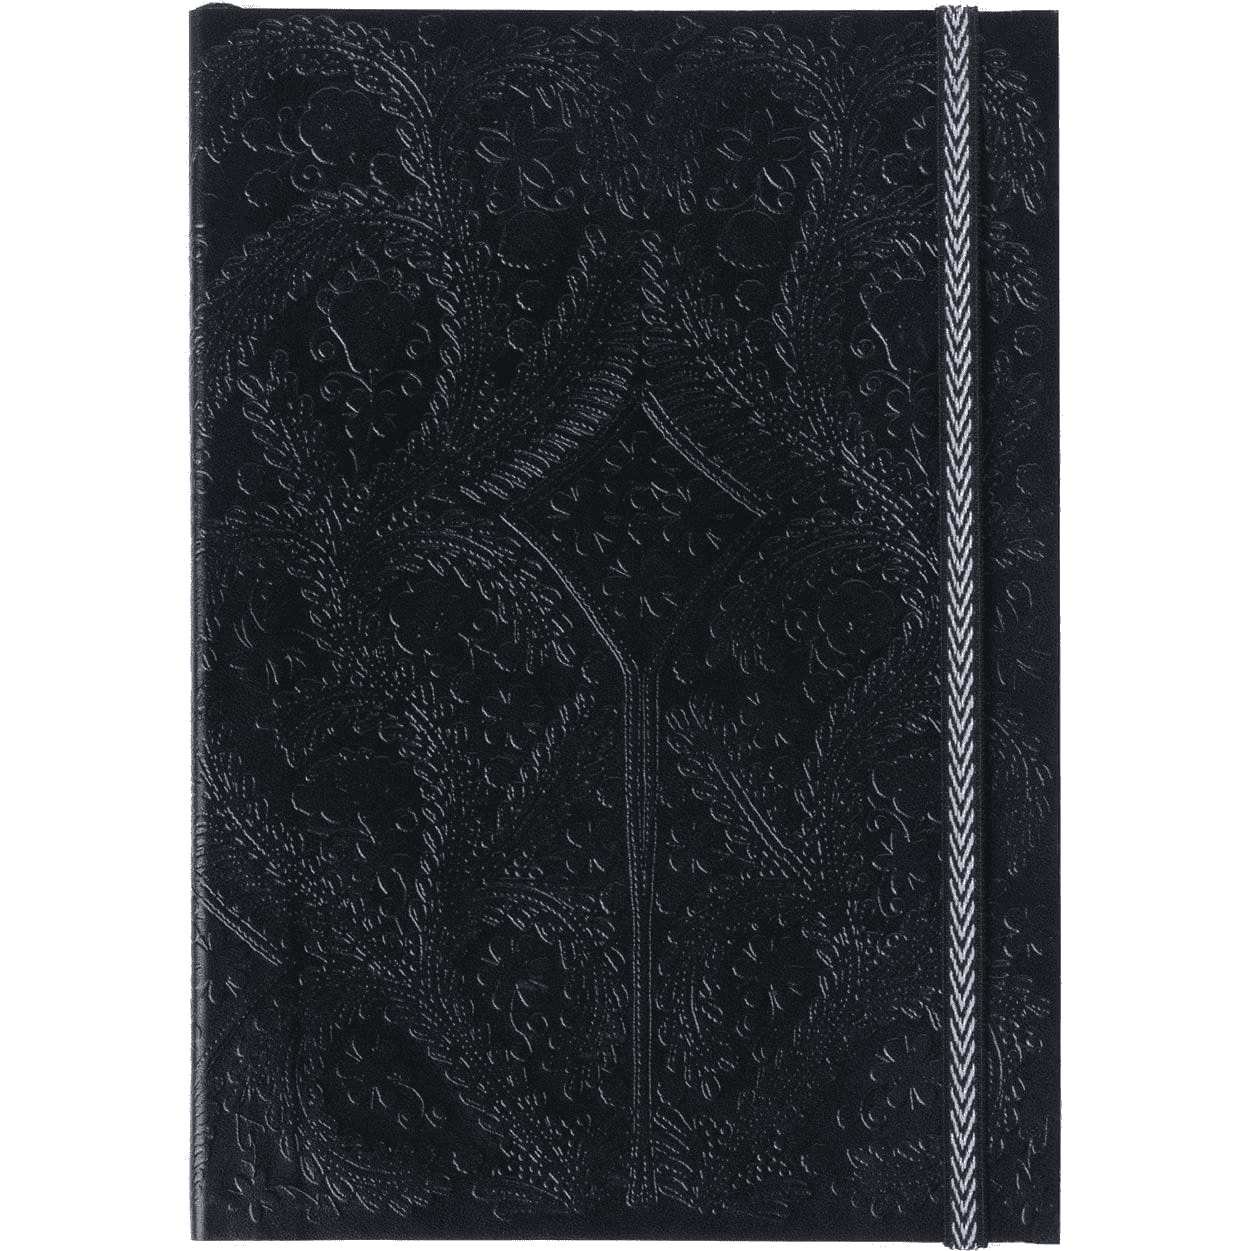 Black Embossed Paseo Notebook Christian Lacroix Notebooks and Journals Christian Lacroix